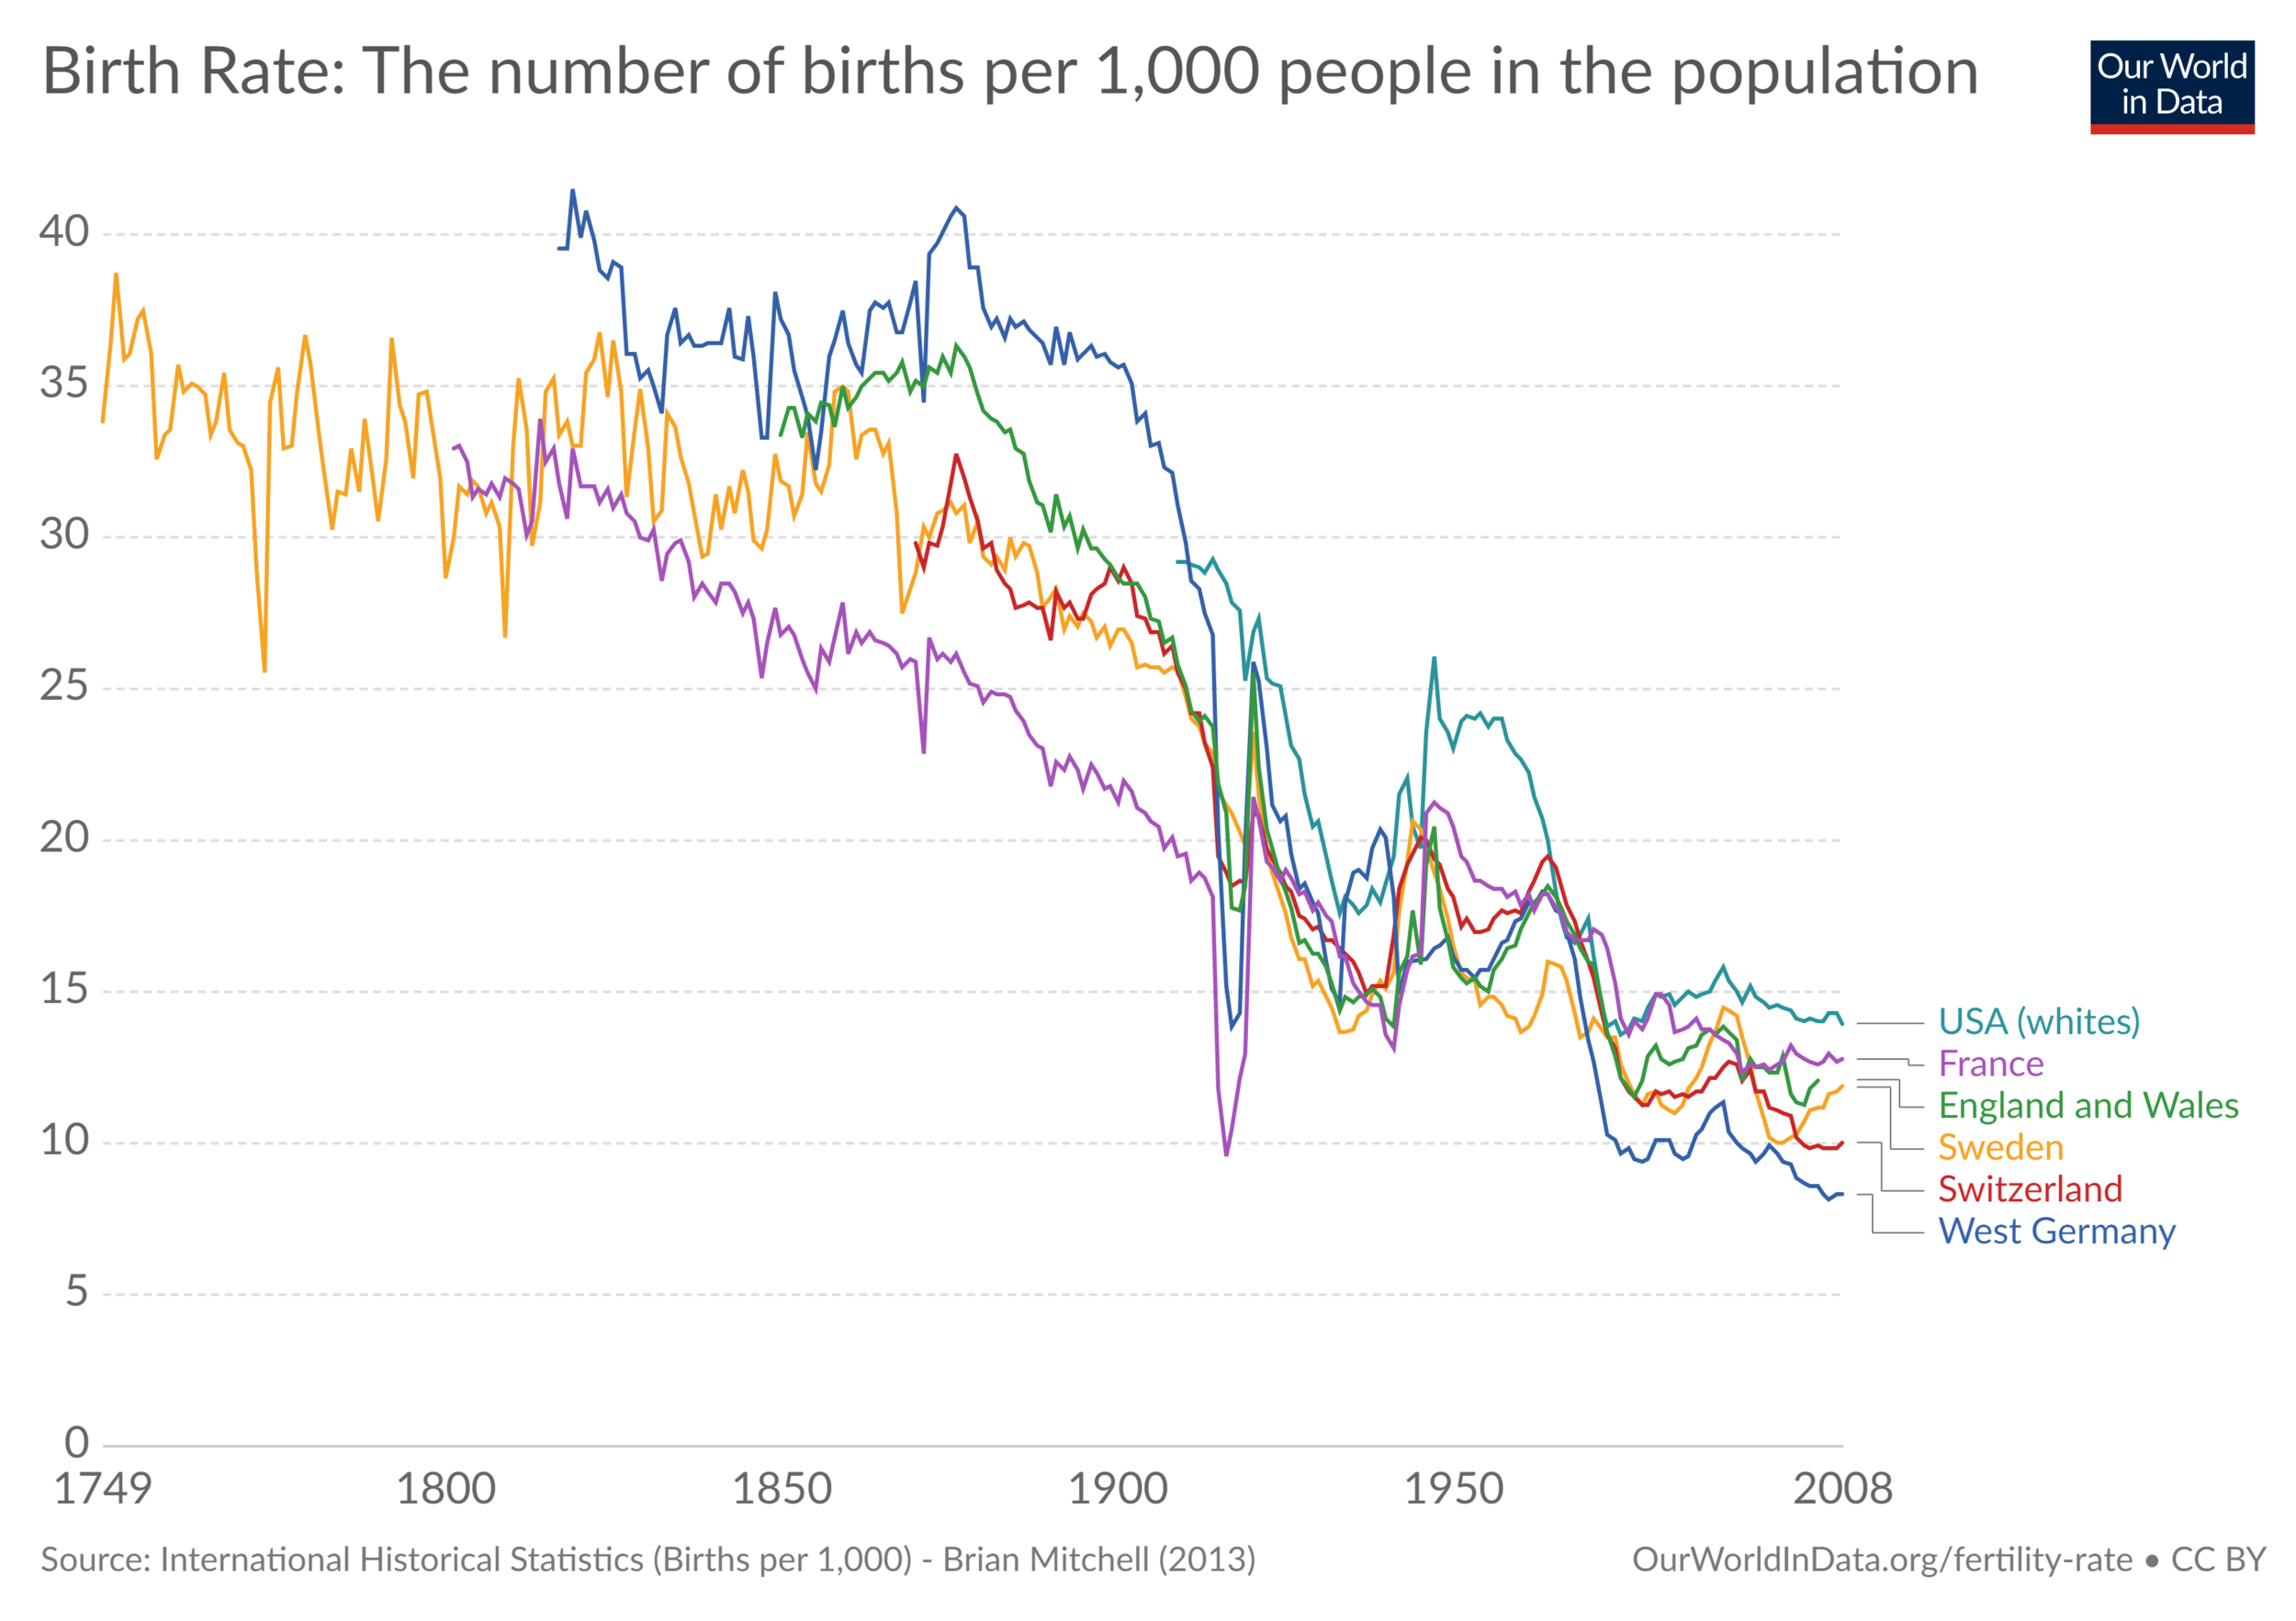 birth-rate-the-number-of-births-per-1000-people-in-the-population (1).png